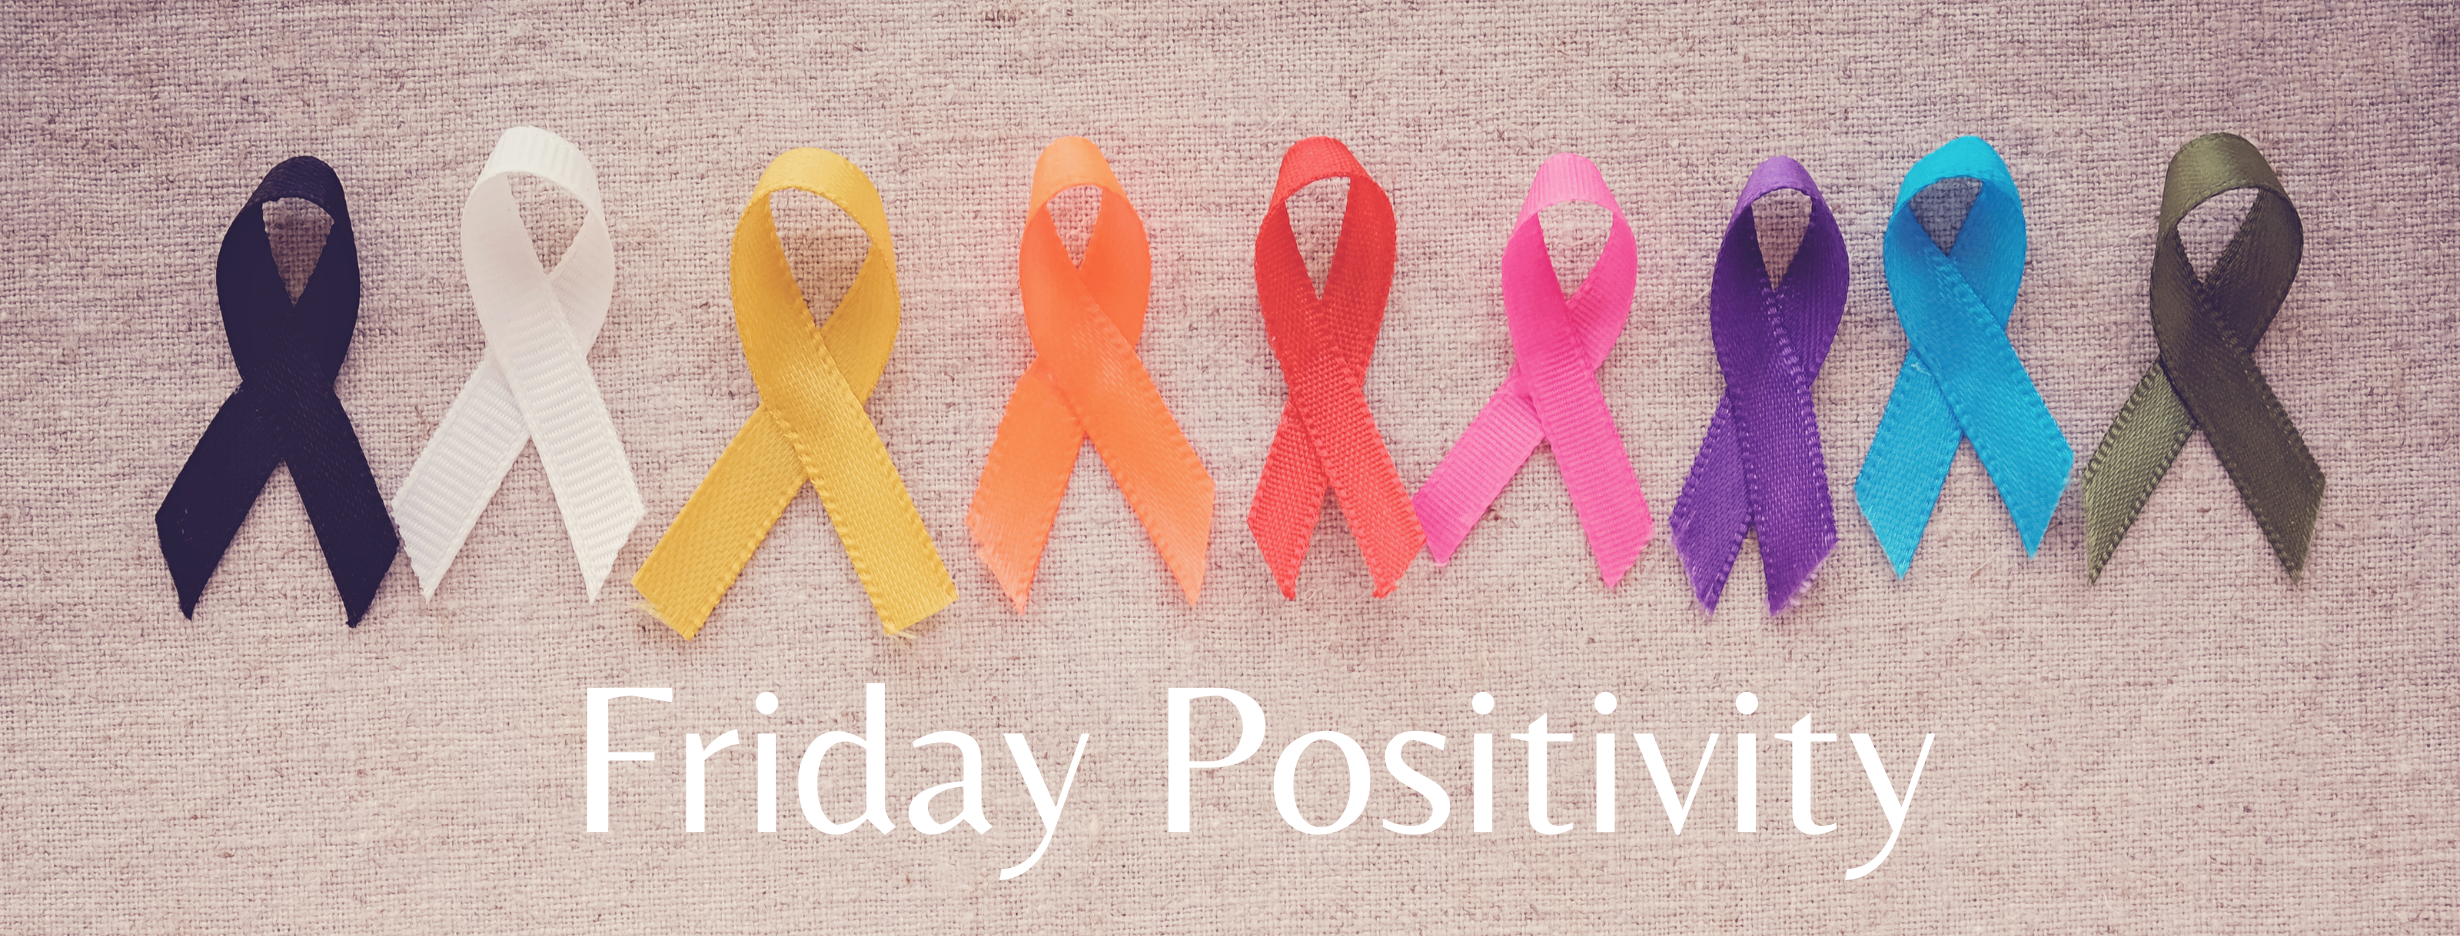 Friday Positivity - A New Way to Remove Cancer Cells Without Damaging Tissue Thumbnail